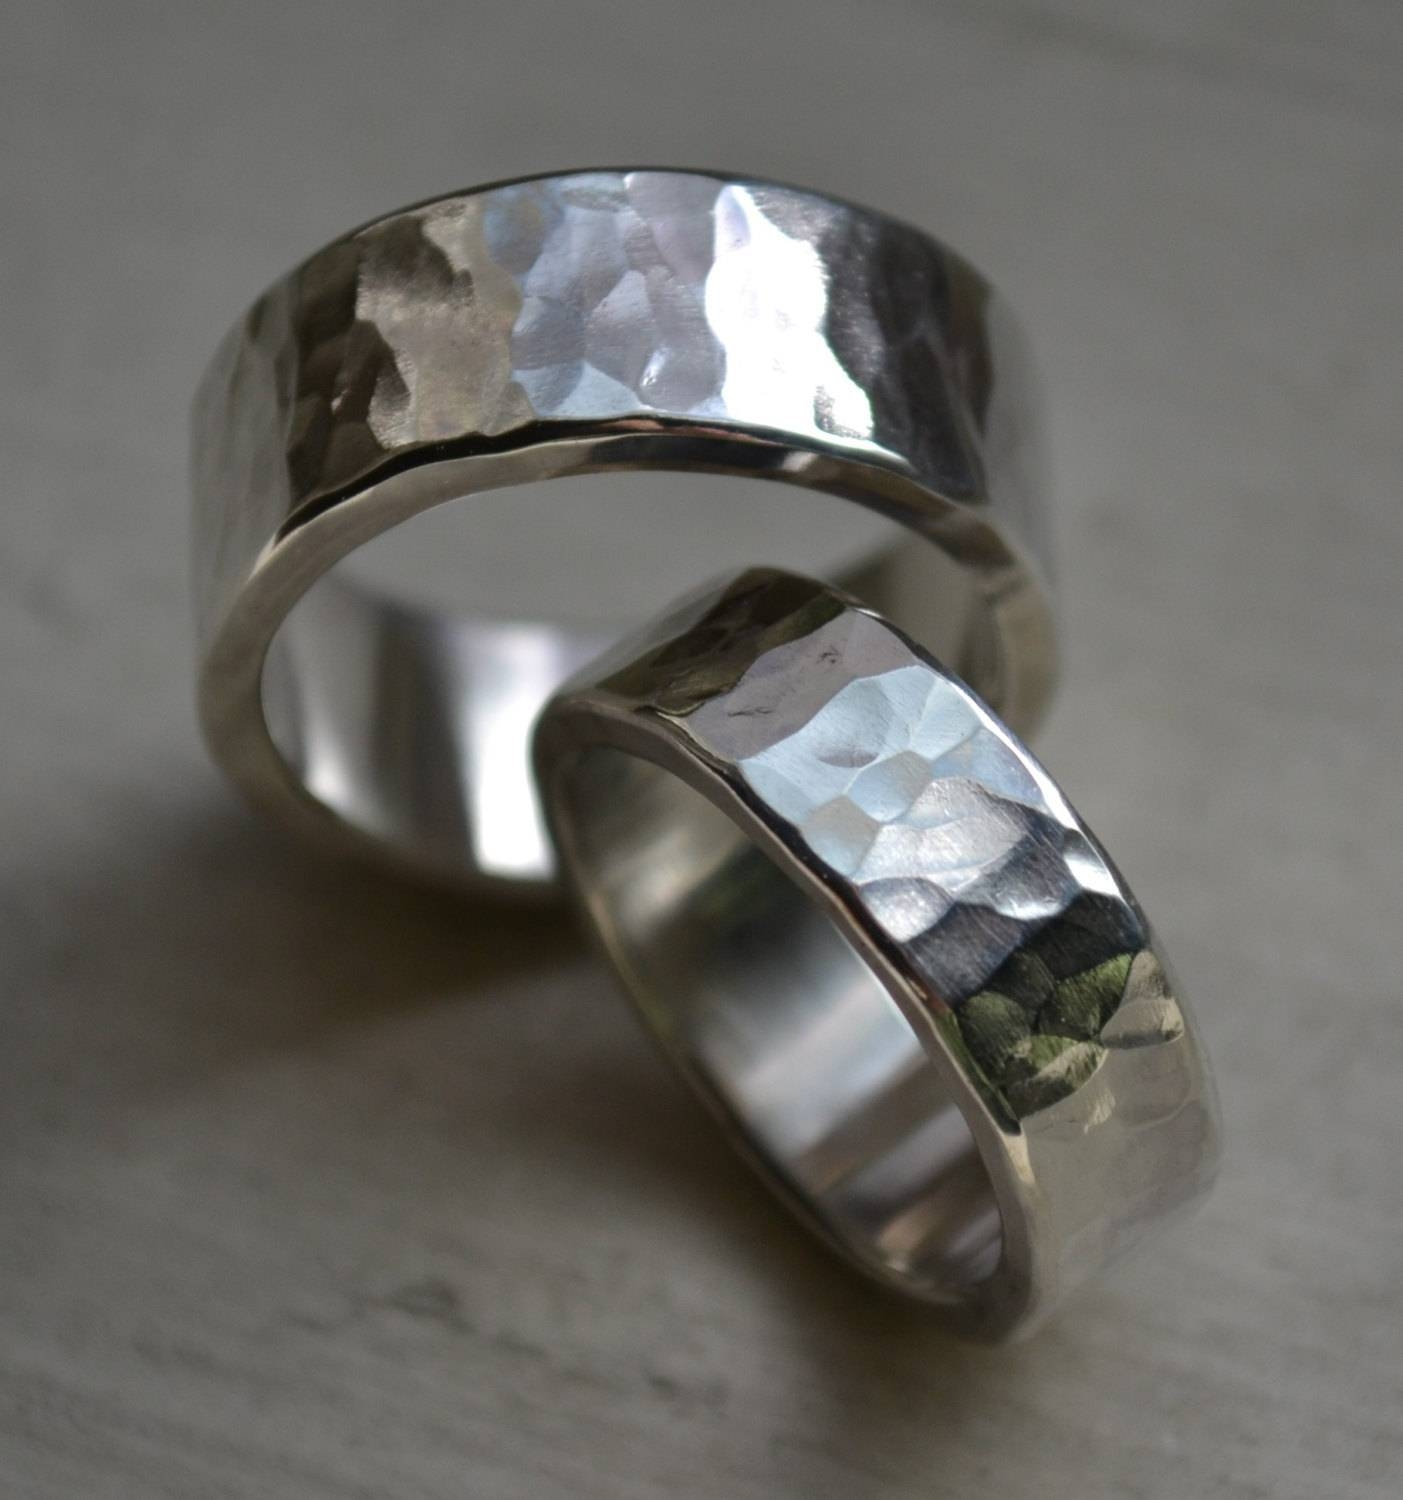 Exotic Design Wedding Rings Louisville Ky Lovely Tradition Of Throughout Nashville Wedding Bands (View 6 of 11)